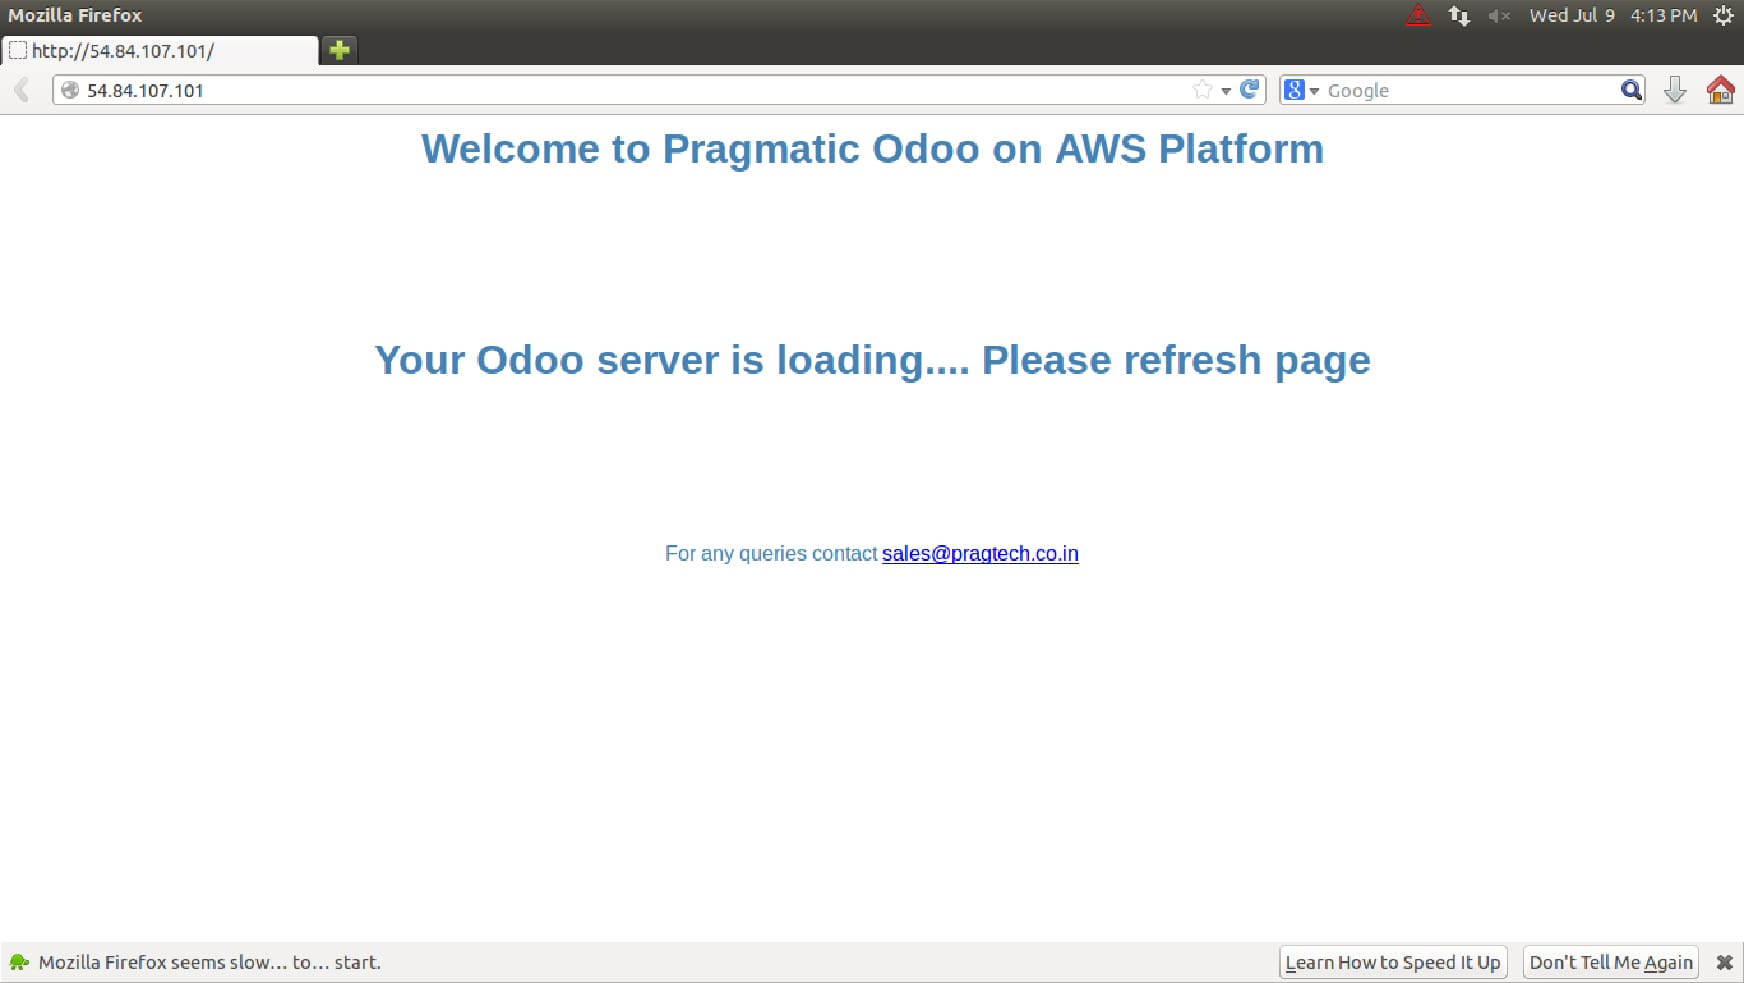 Pragmatic Odoo Amazon AWS Platform - Pragmatic